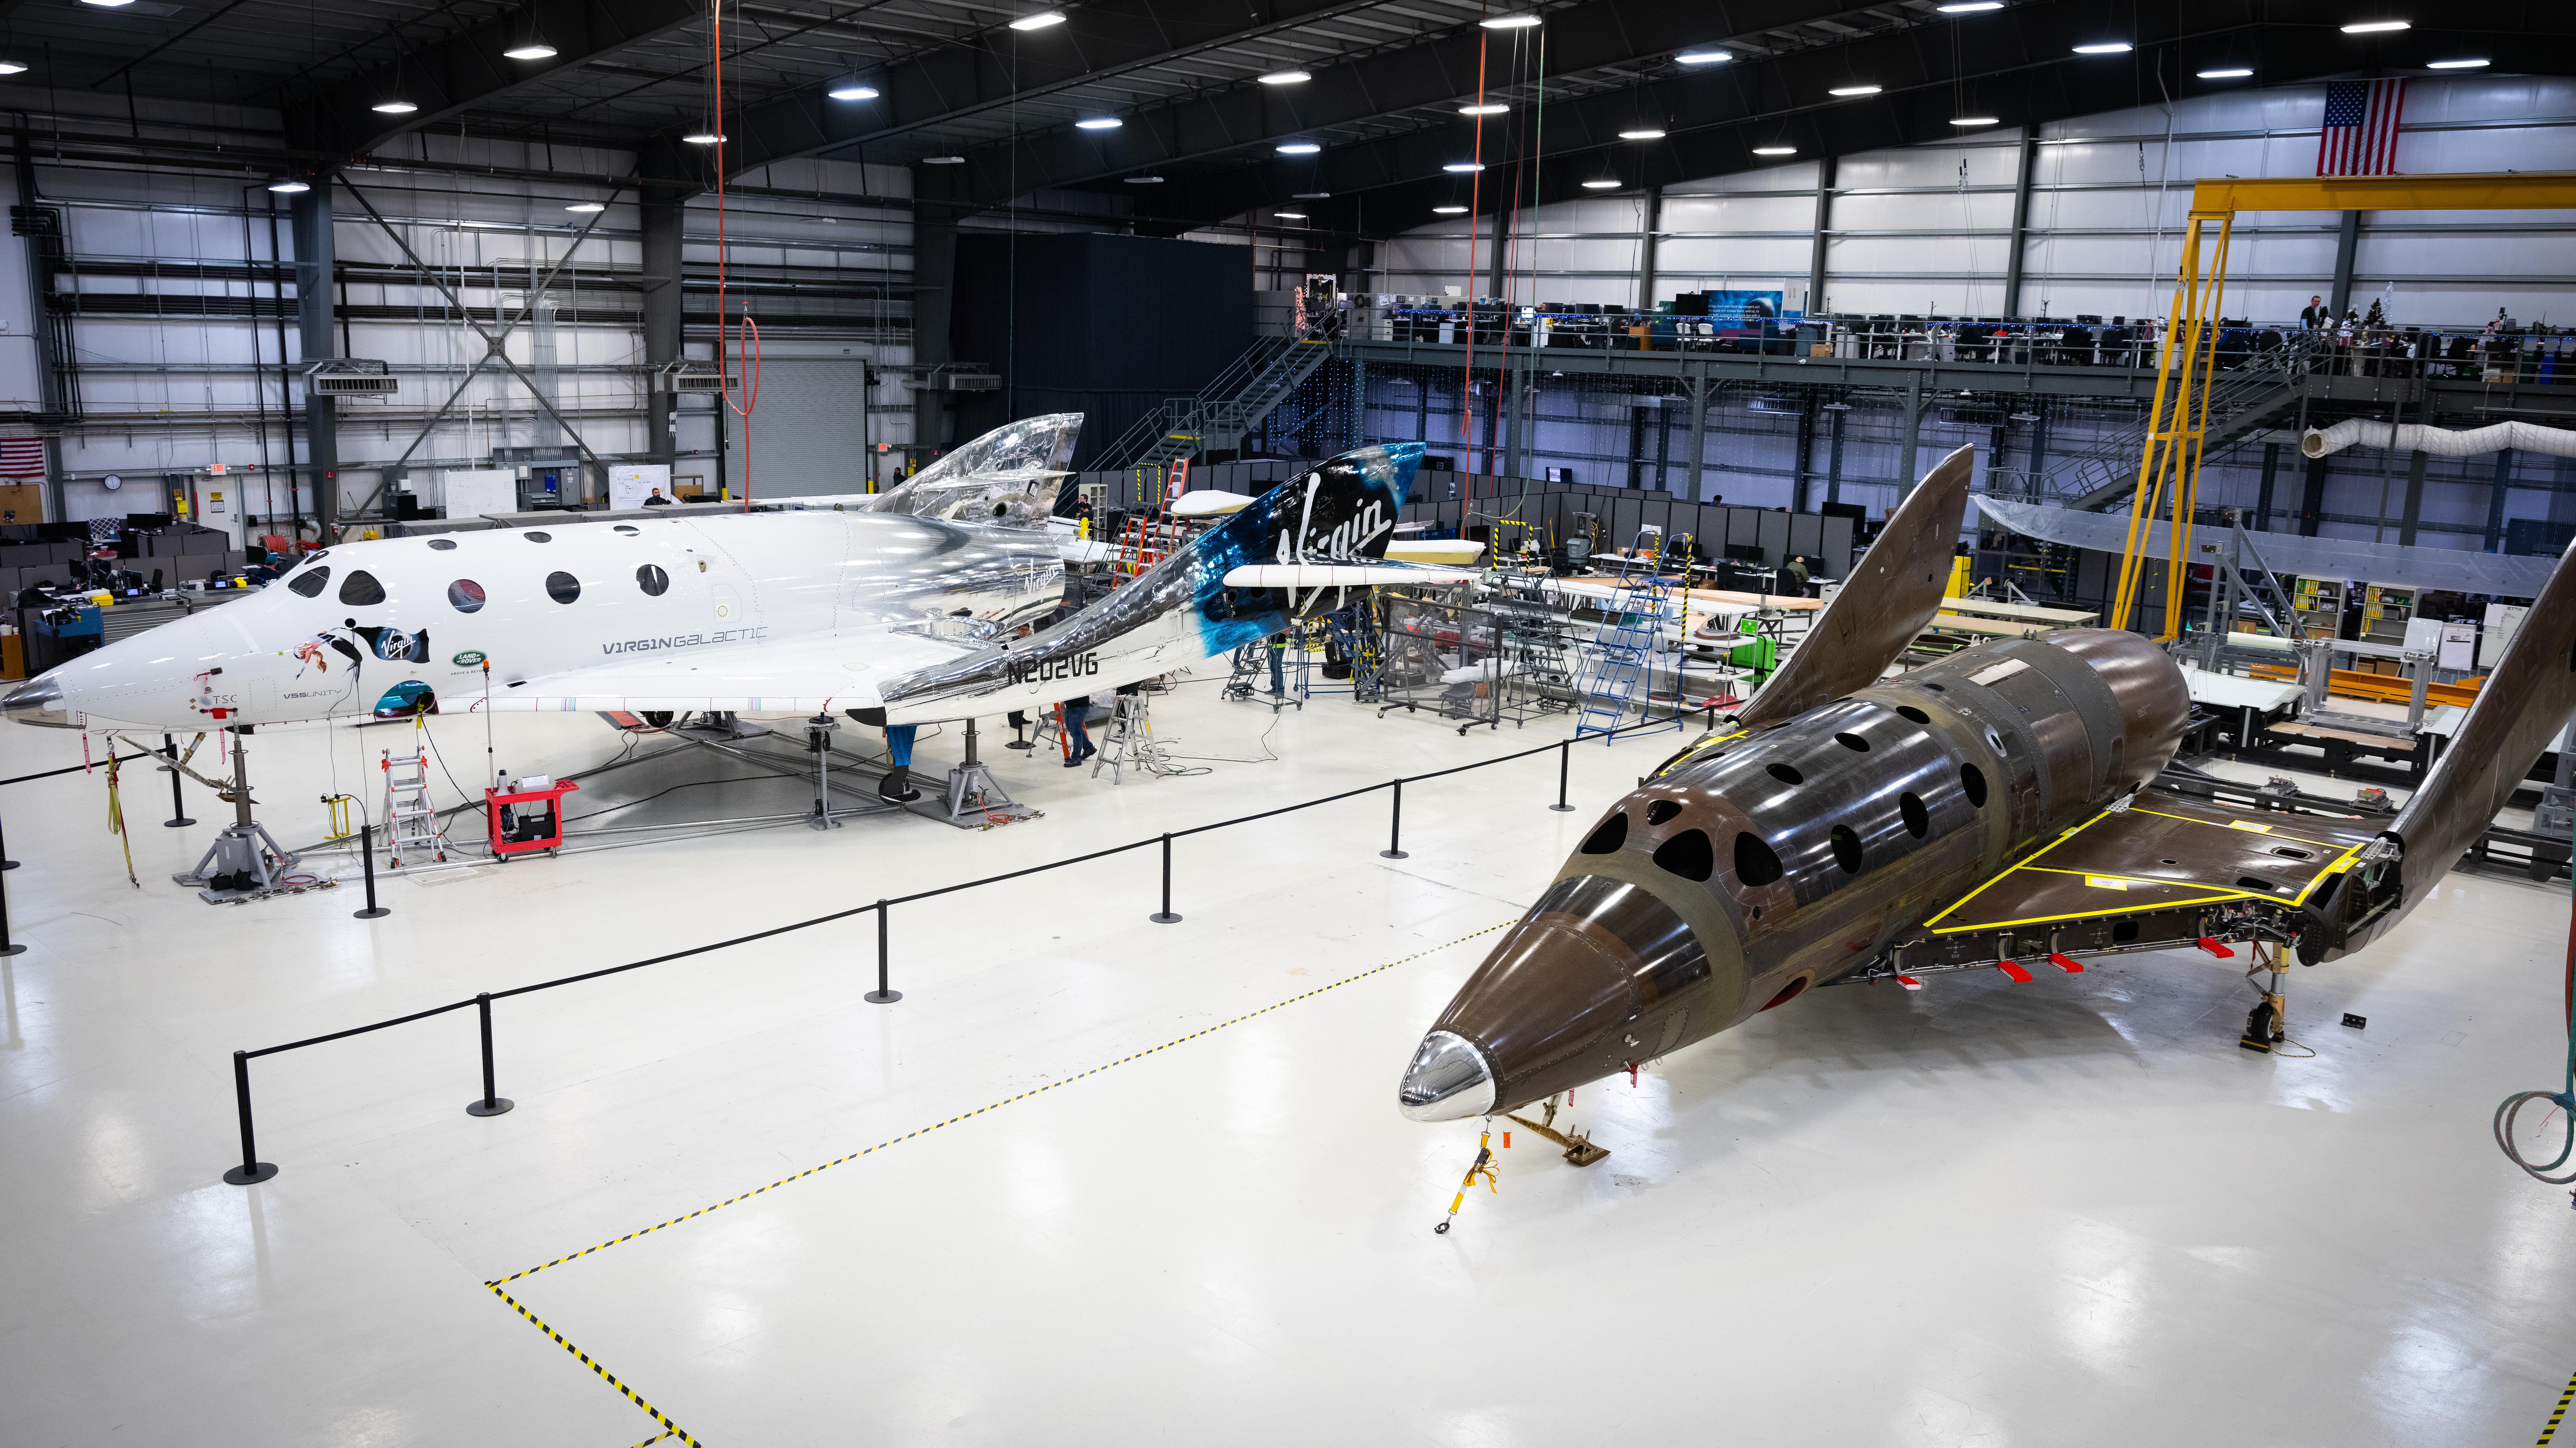 PCIAW   PCIAW News   Virgin Galactic Holdings, Inc. reaches another major build milestone